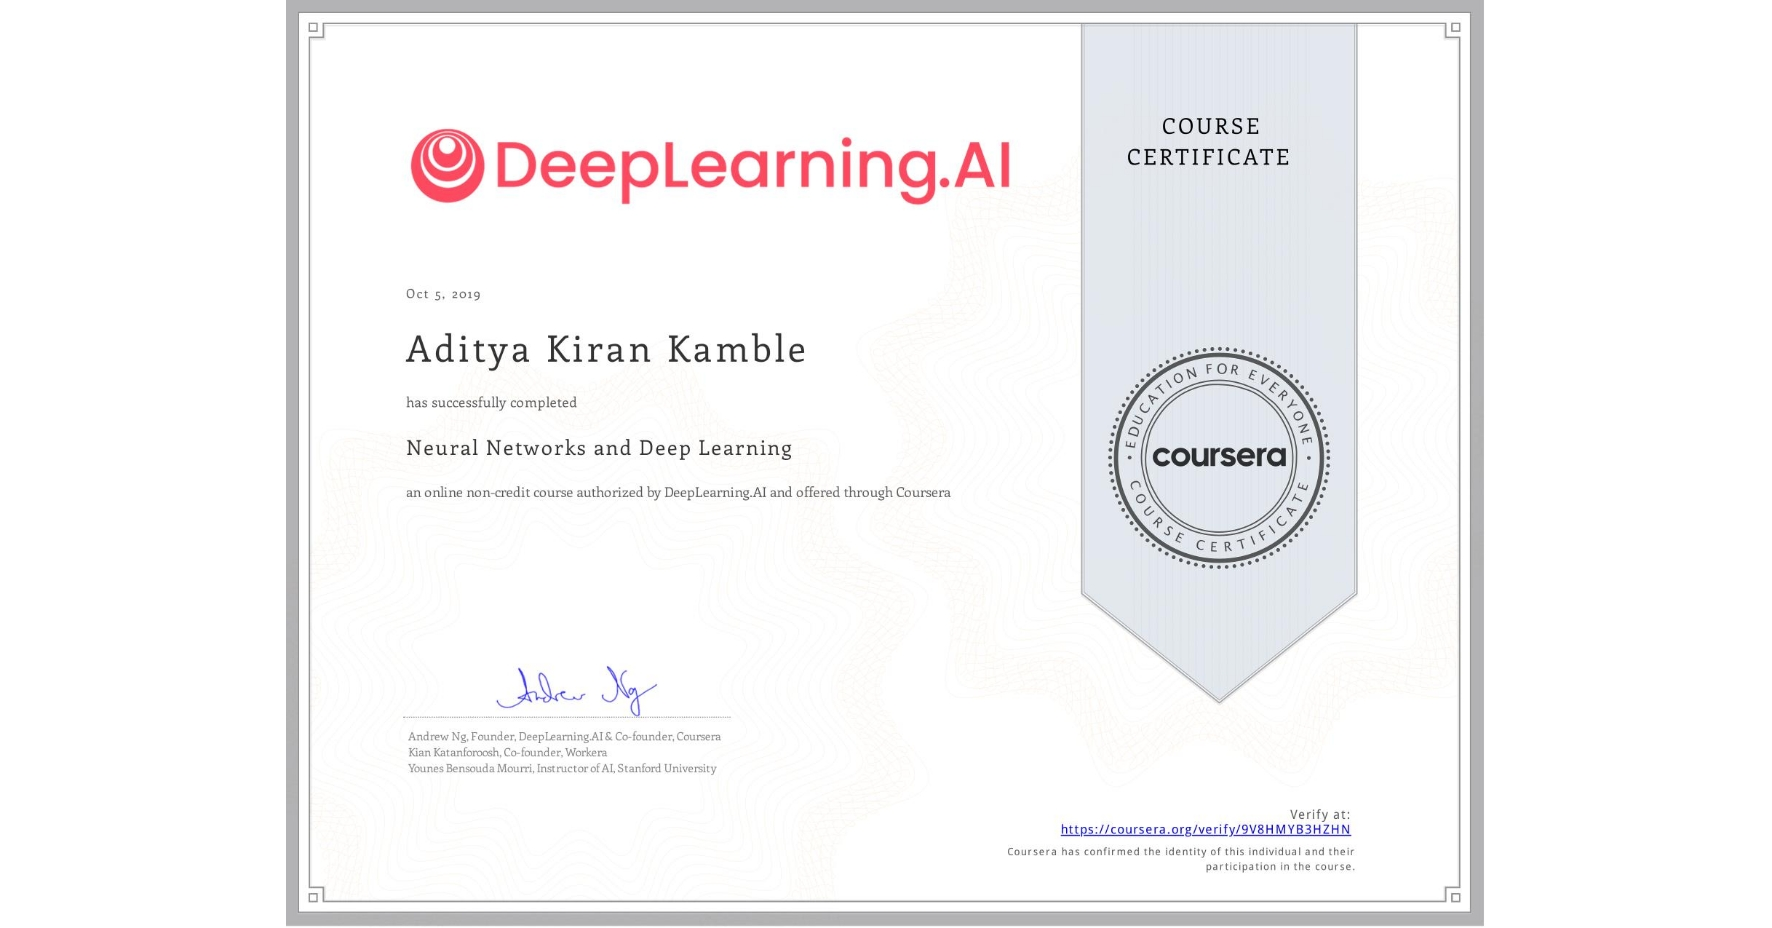 View certificate for Aditya Kiran Kamble, Neural Networks and Deep Learning, an online non-credit course authorized by DeepLearning.AI and offered through Coursera